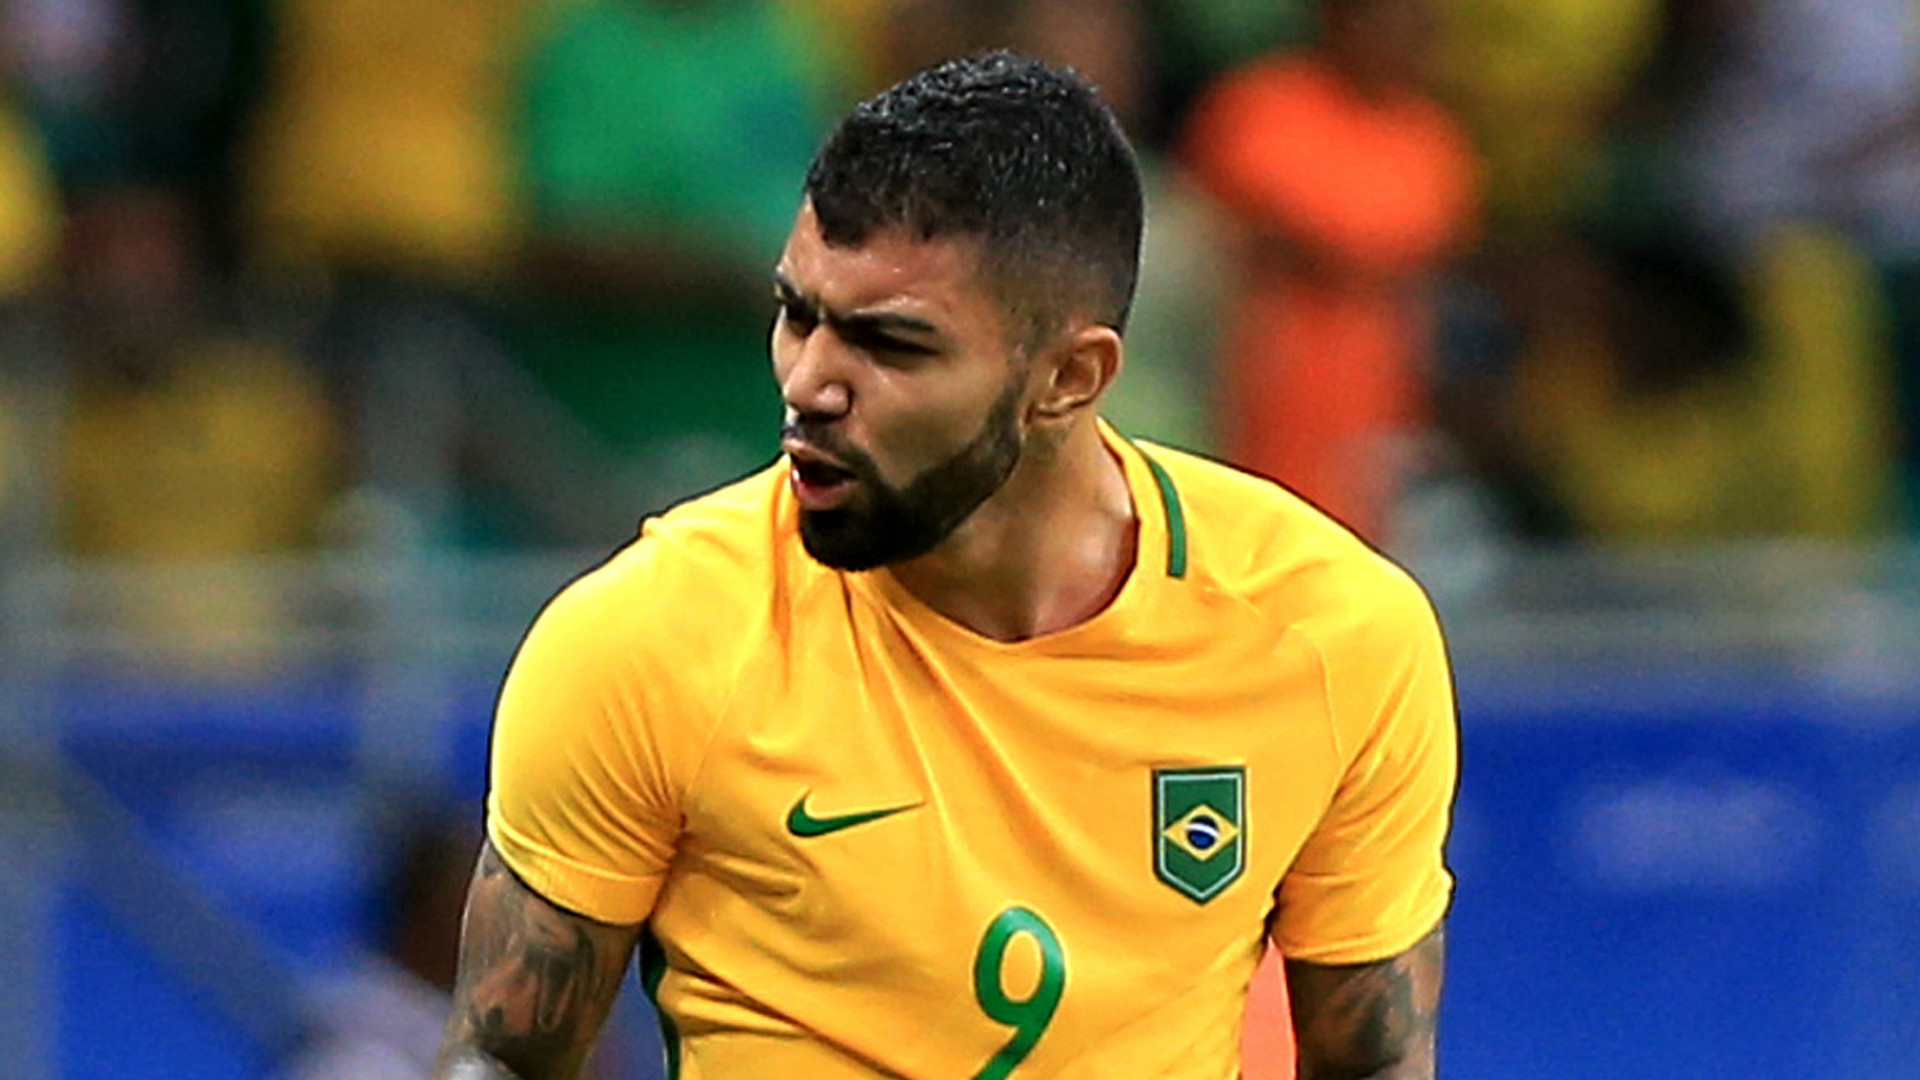 Inter Milan signs Brazil forward Gabigol until 2021